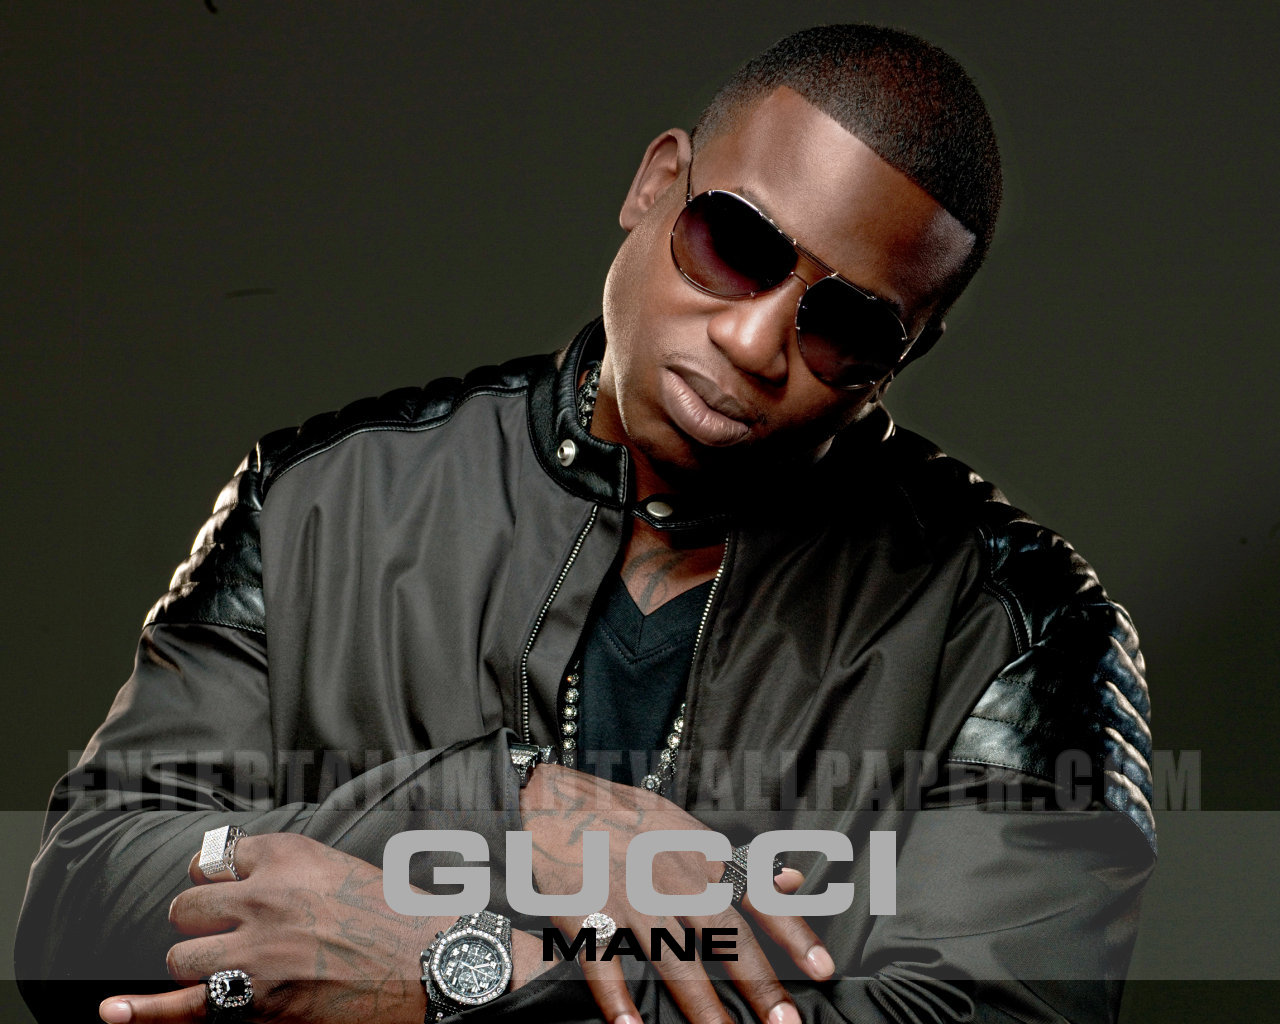 Free Download Gucci Mane Wallpaper 40025343 1280x1024